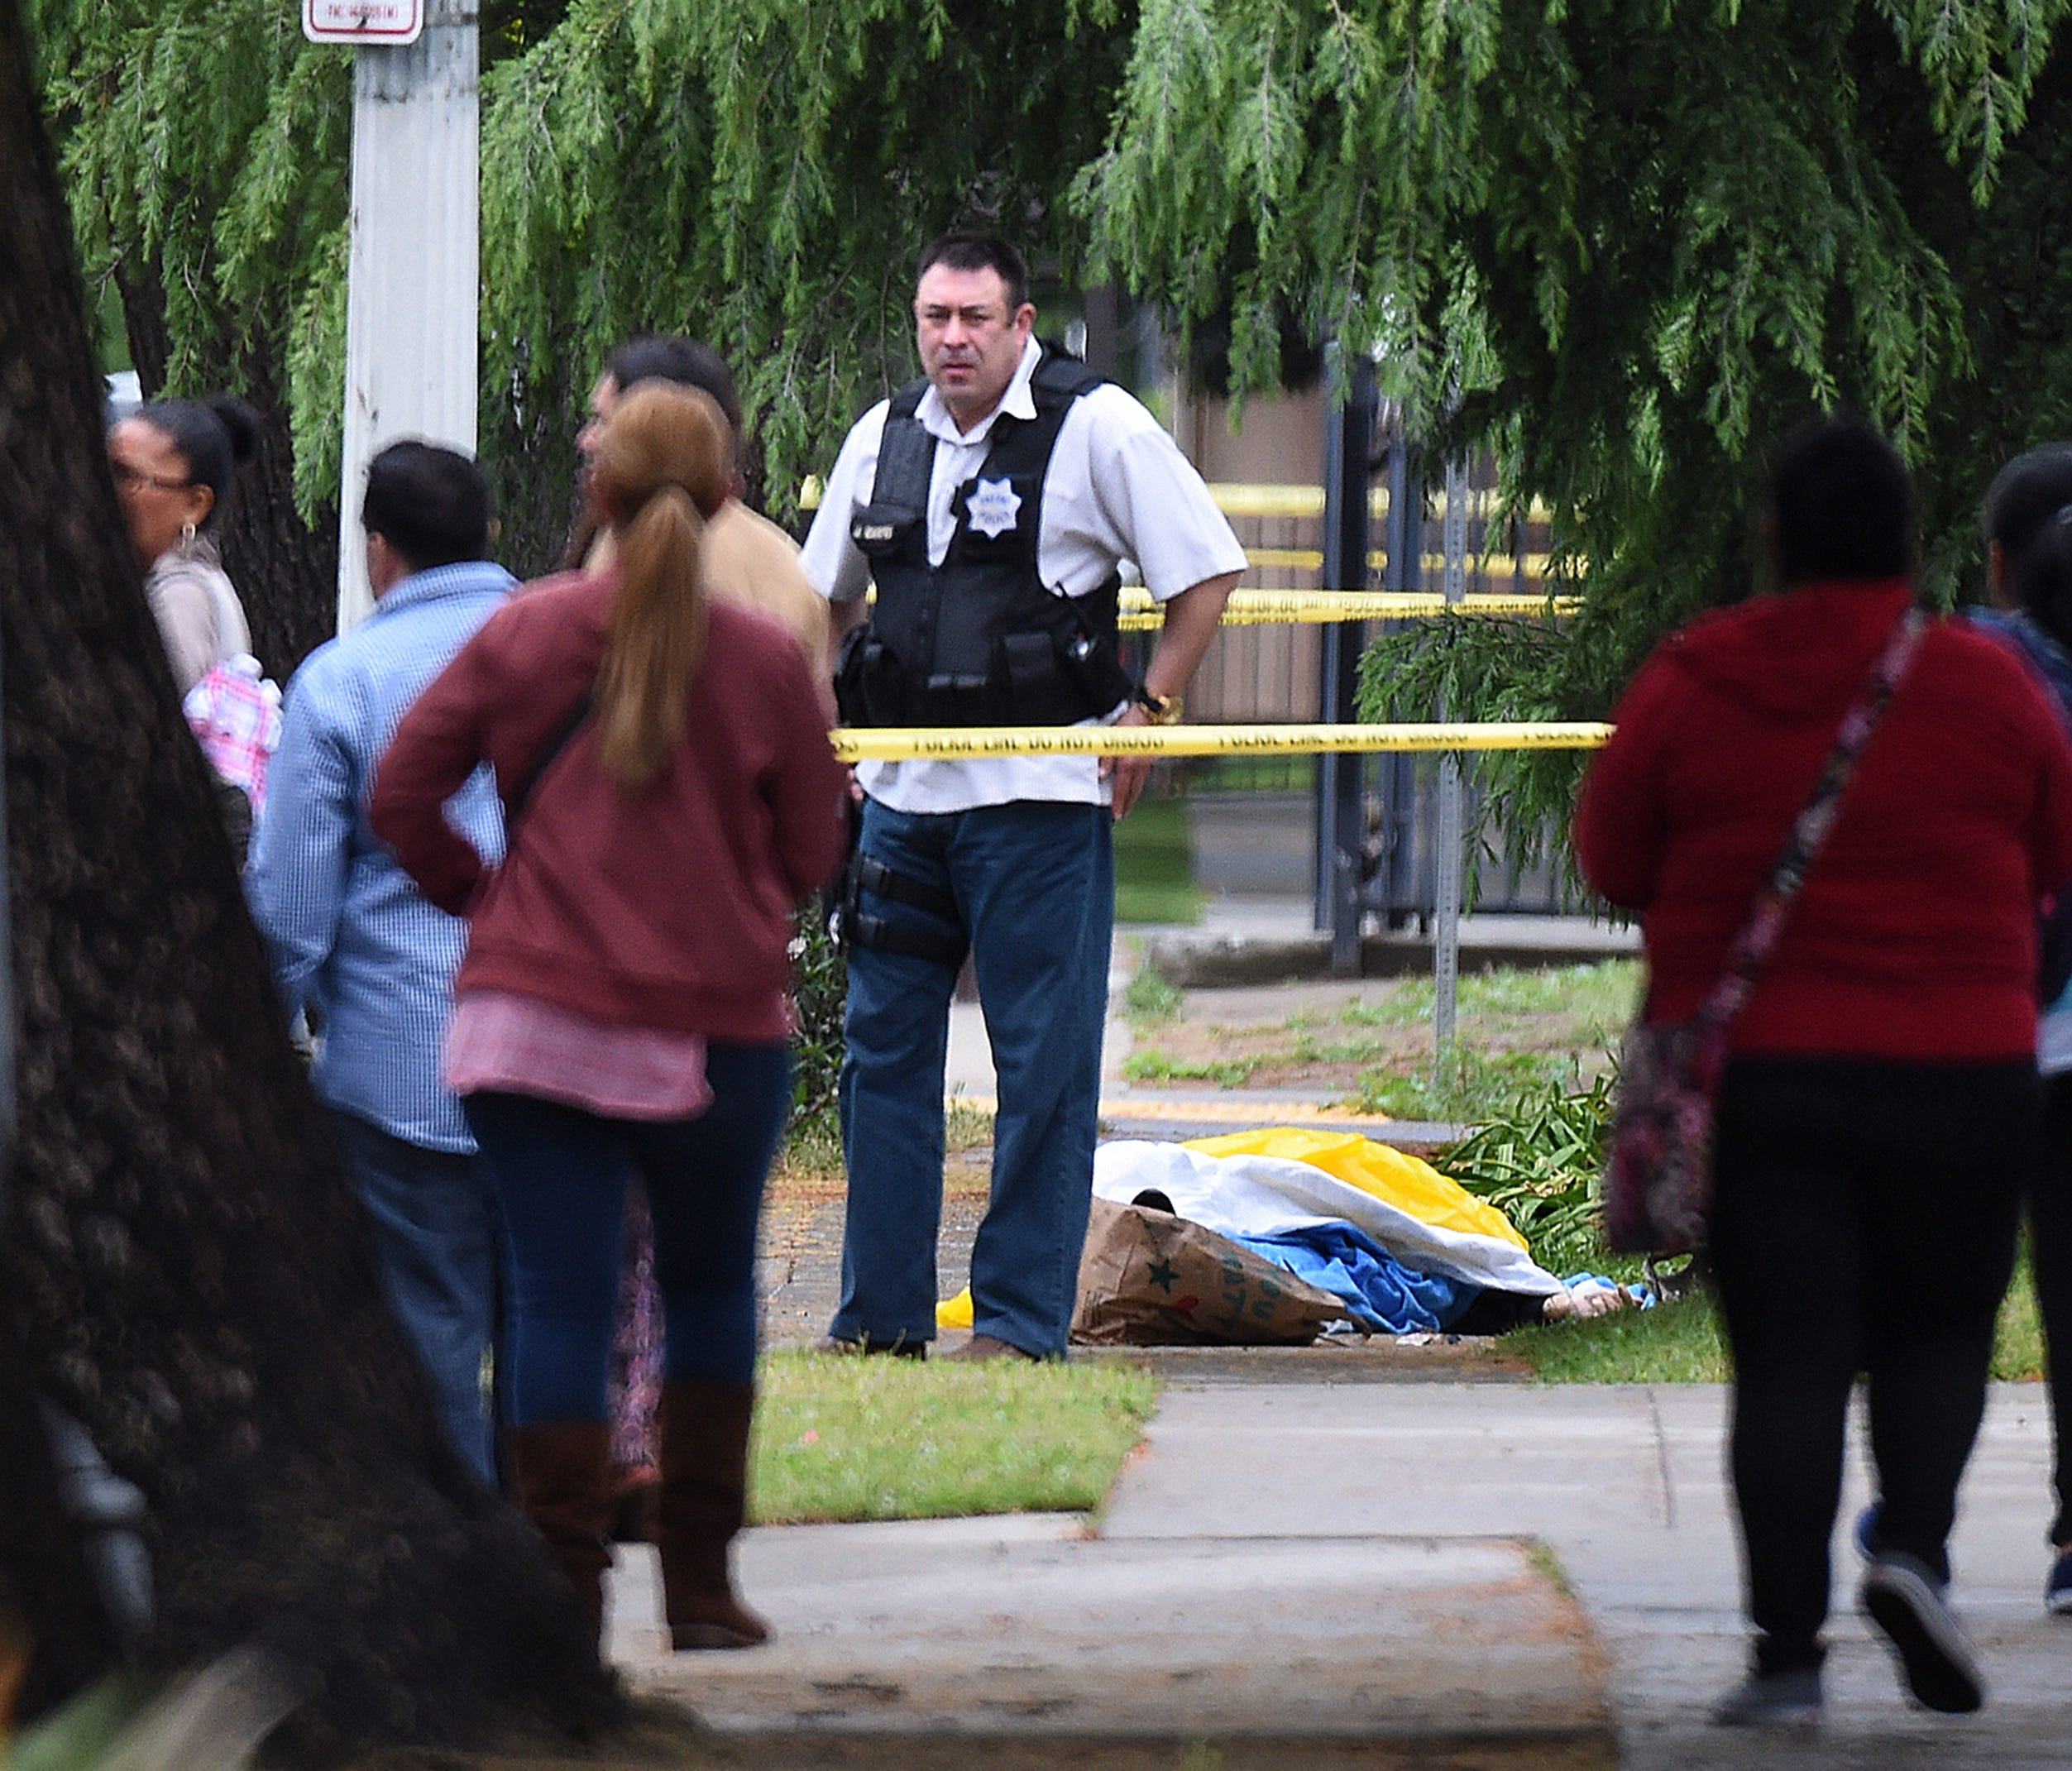 A Fresno police detective stands over the body of one of the three shooting victims Tuesday, April 18, 2017 in Fresno, Calif. A man shot and killed three people on the streets of downtown Fresno on Tuesday, shouting